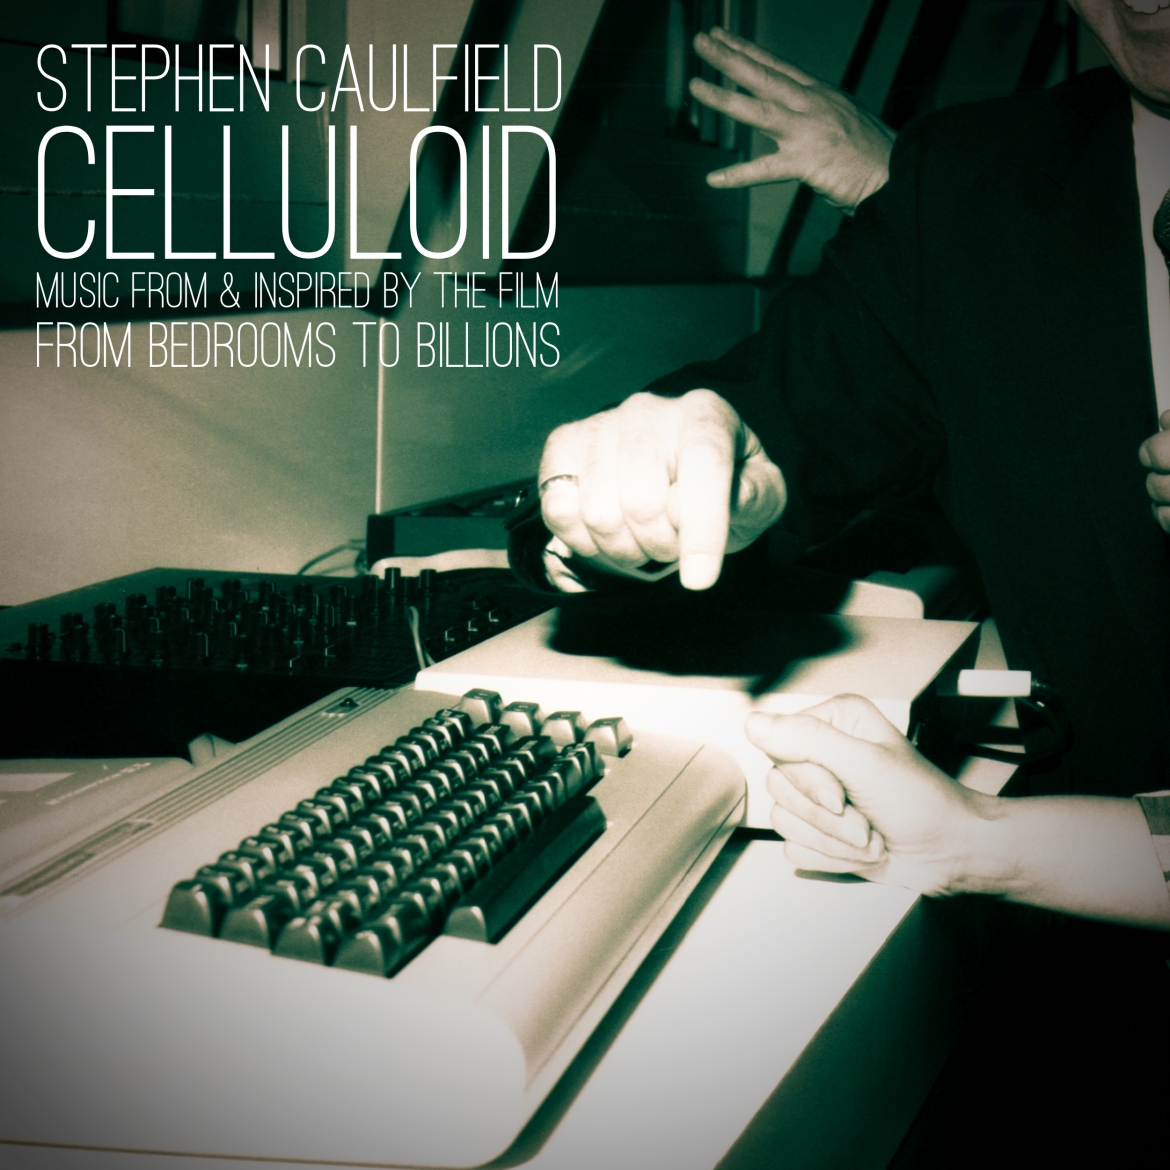 Celluloid (From Bedrooms To Billions)